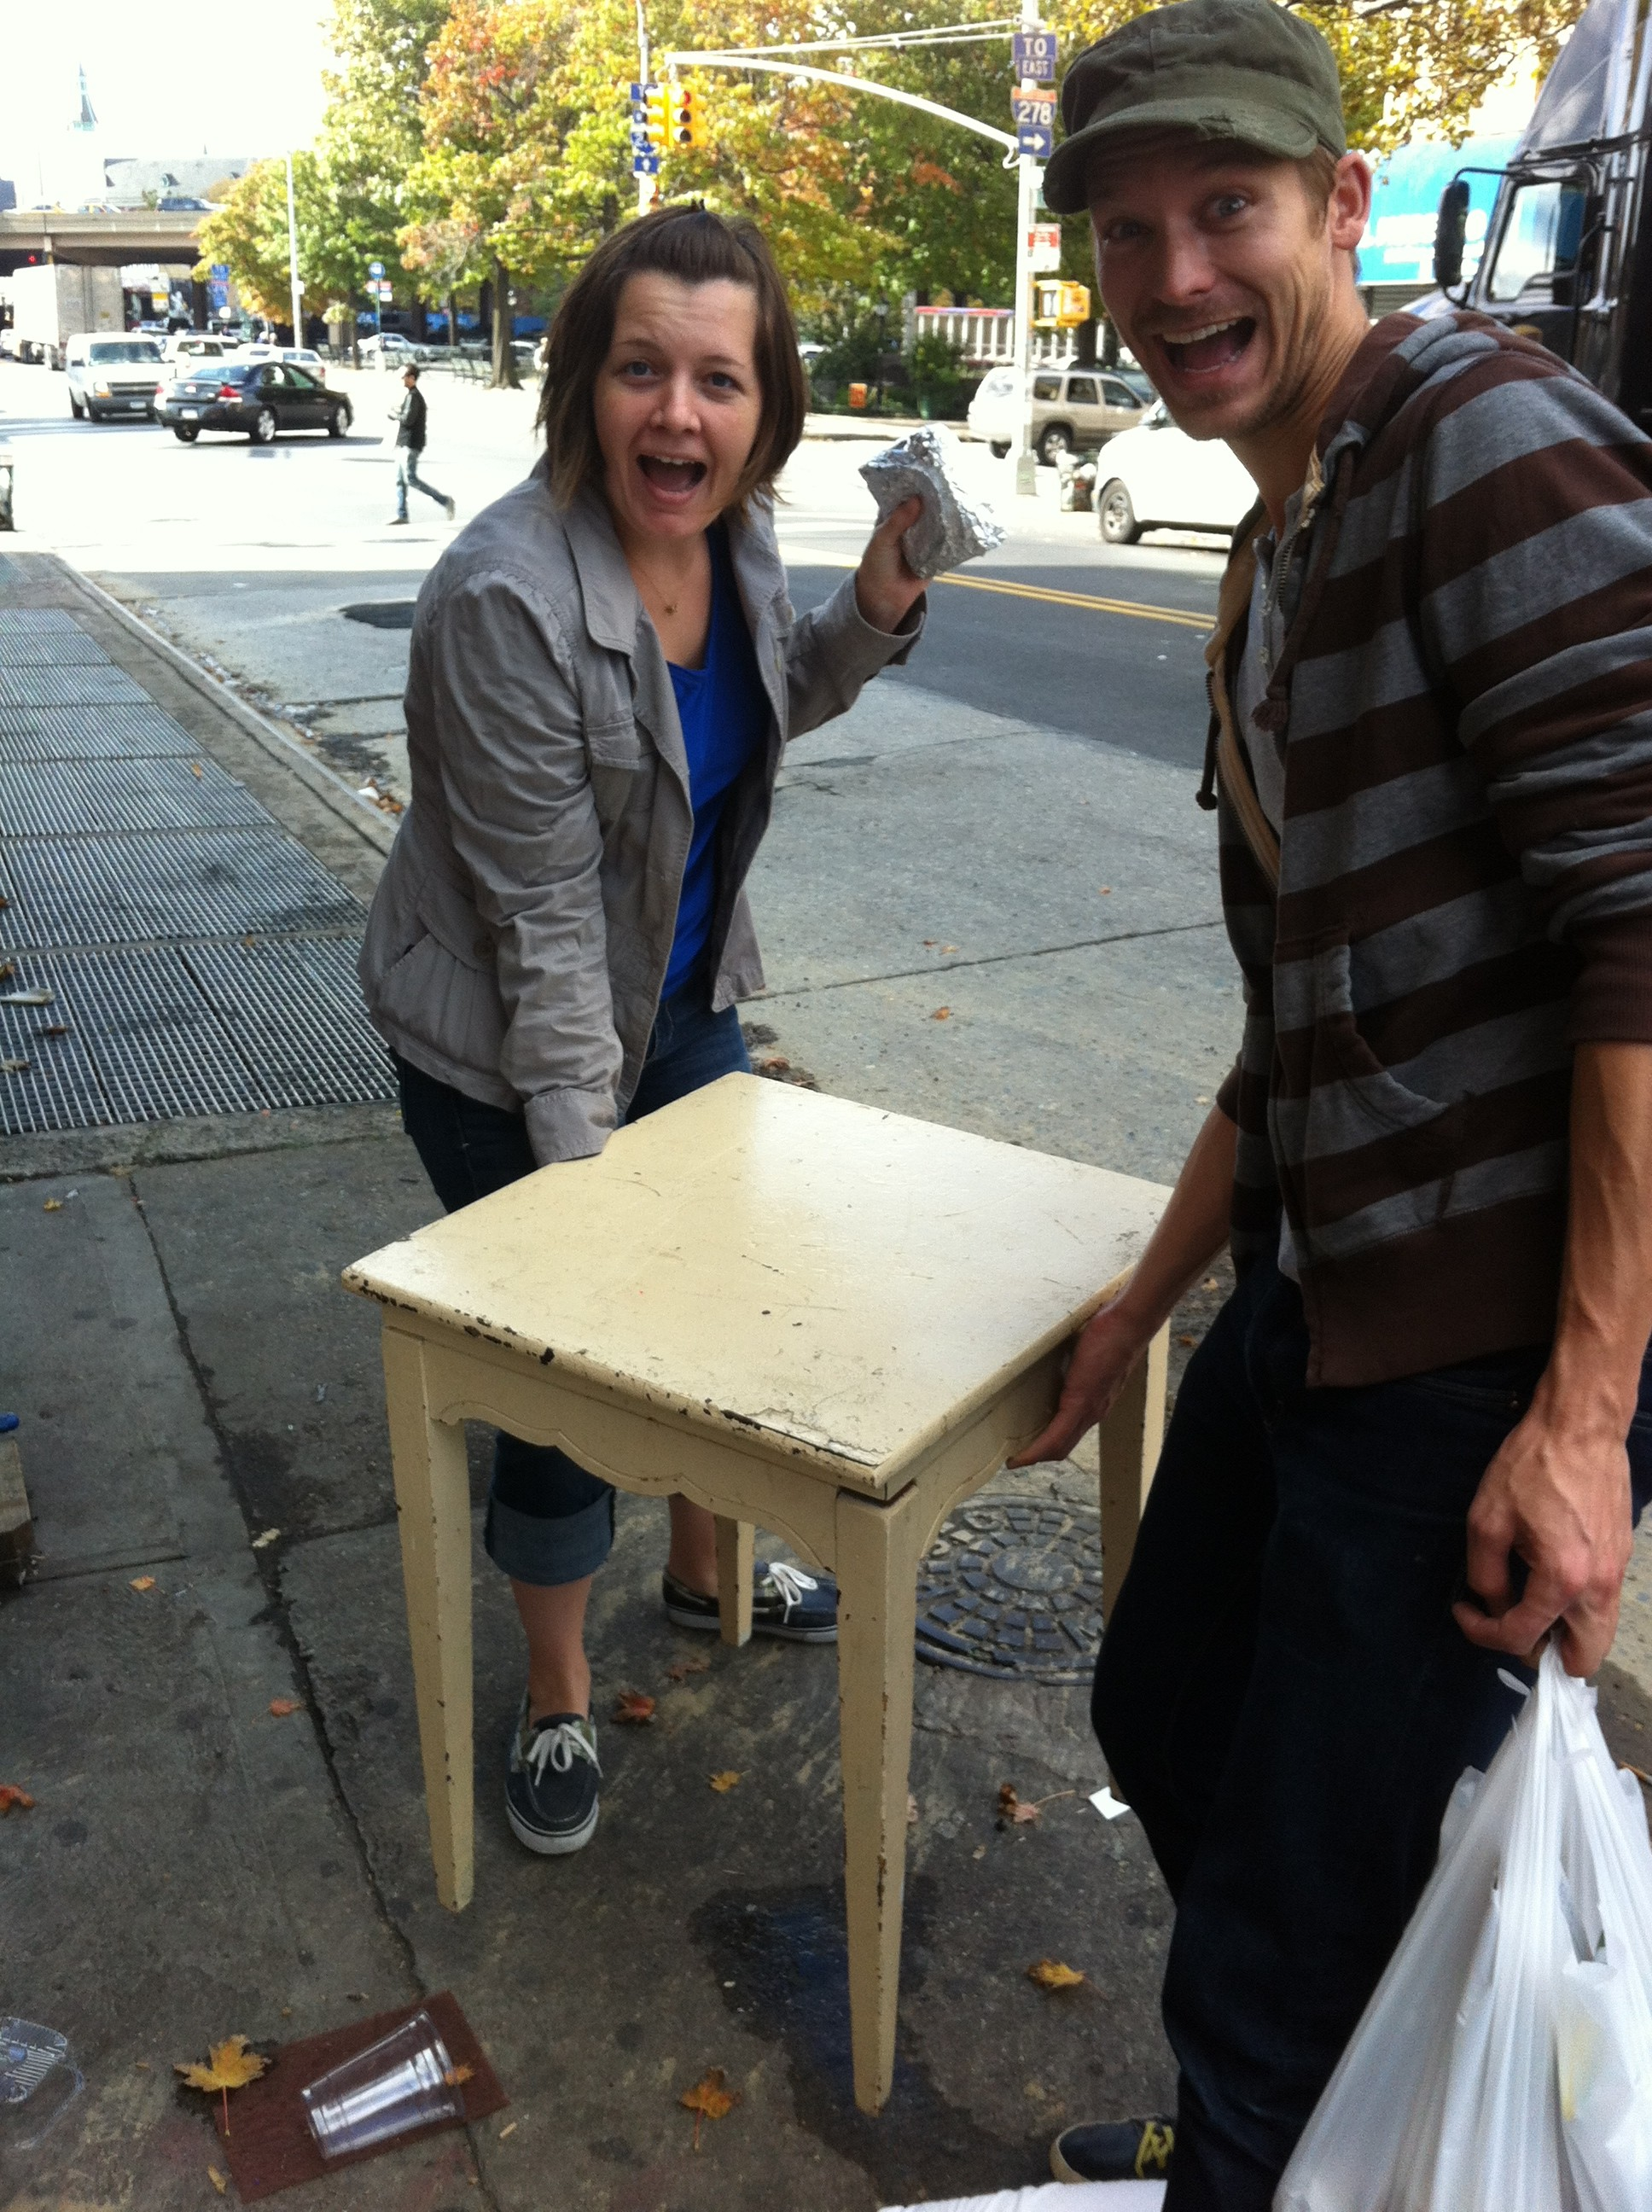 A close up of Debbie Wheatley and Chris White carrying a street find side table